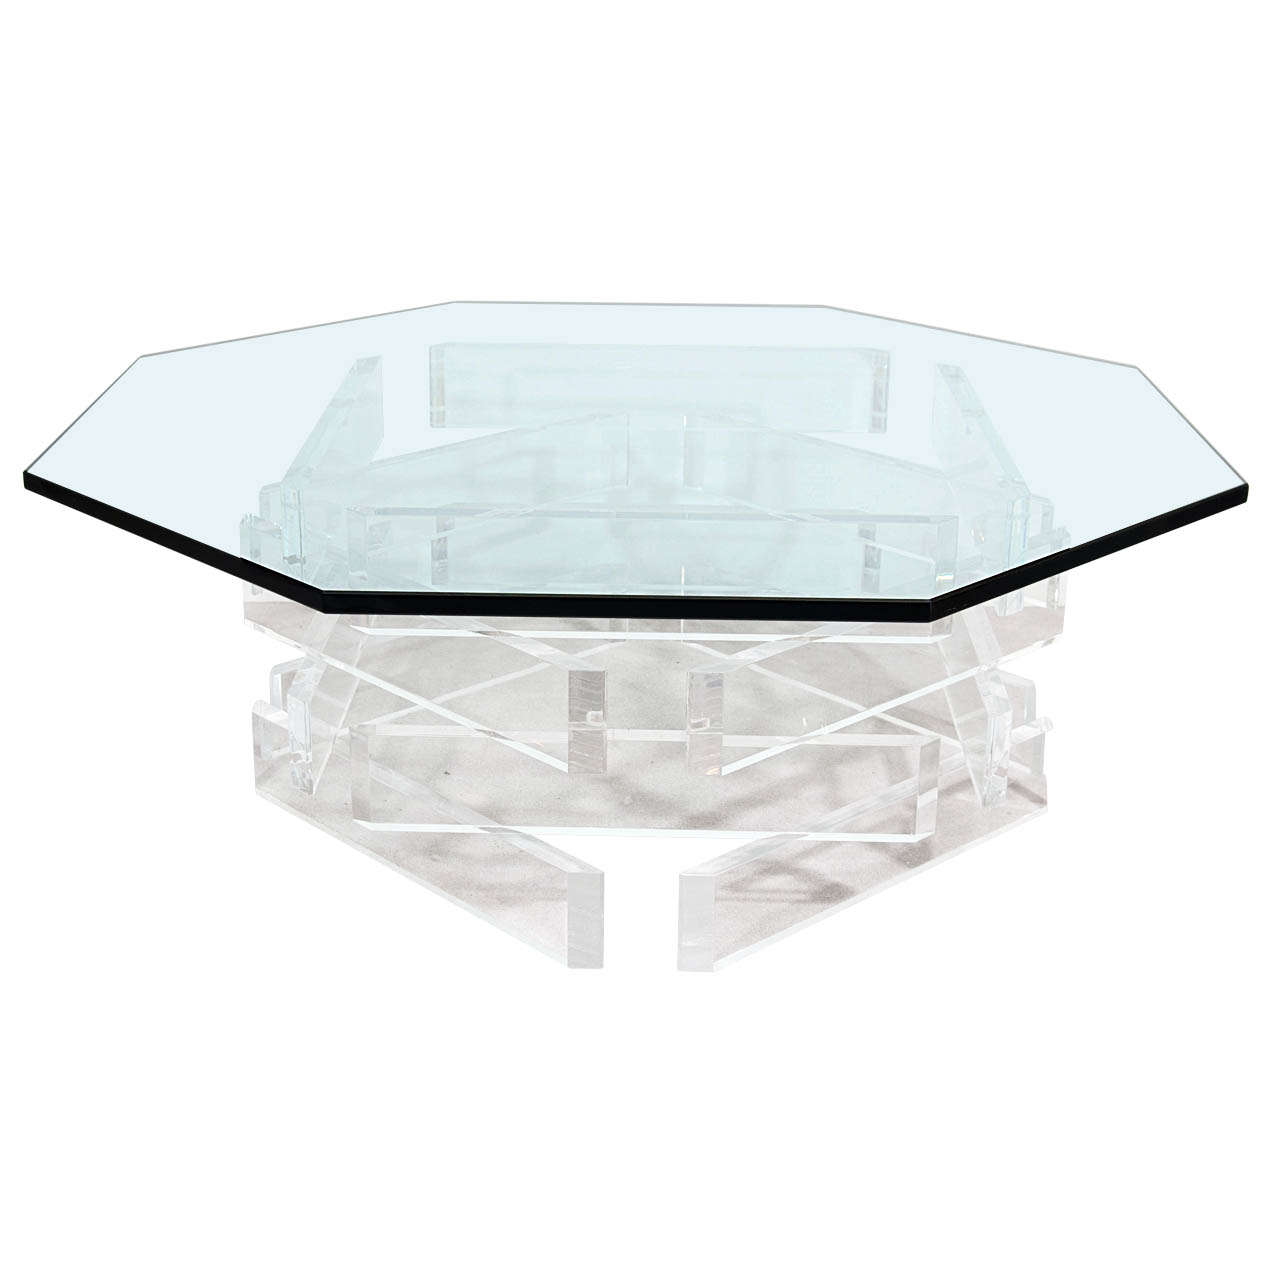 A Mid Century Glass and Lucite Coffee or Cocktail Table